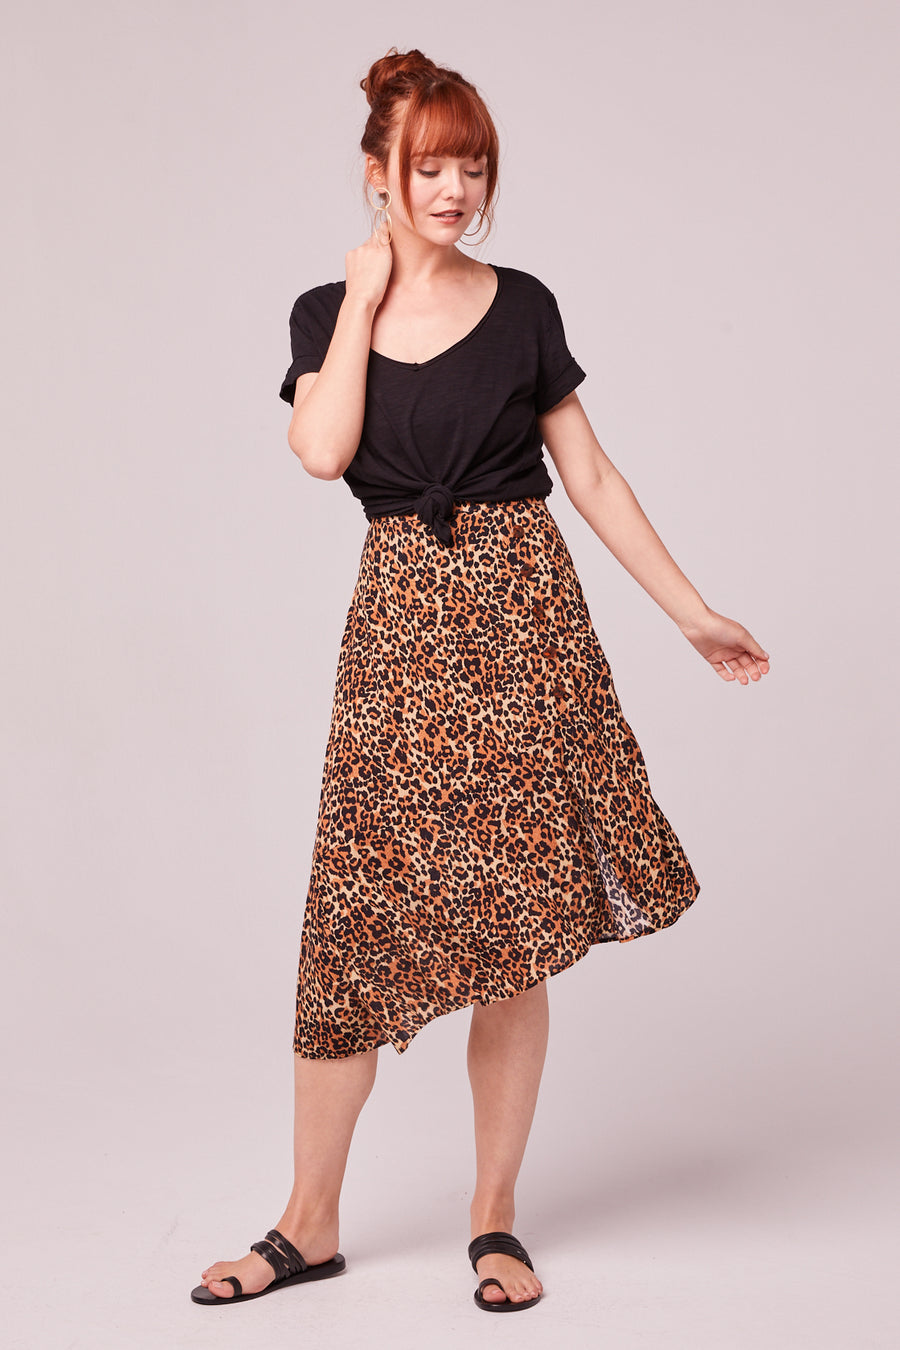 Bronzite Animal Print Skirt